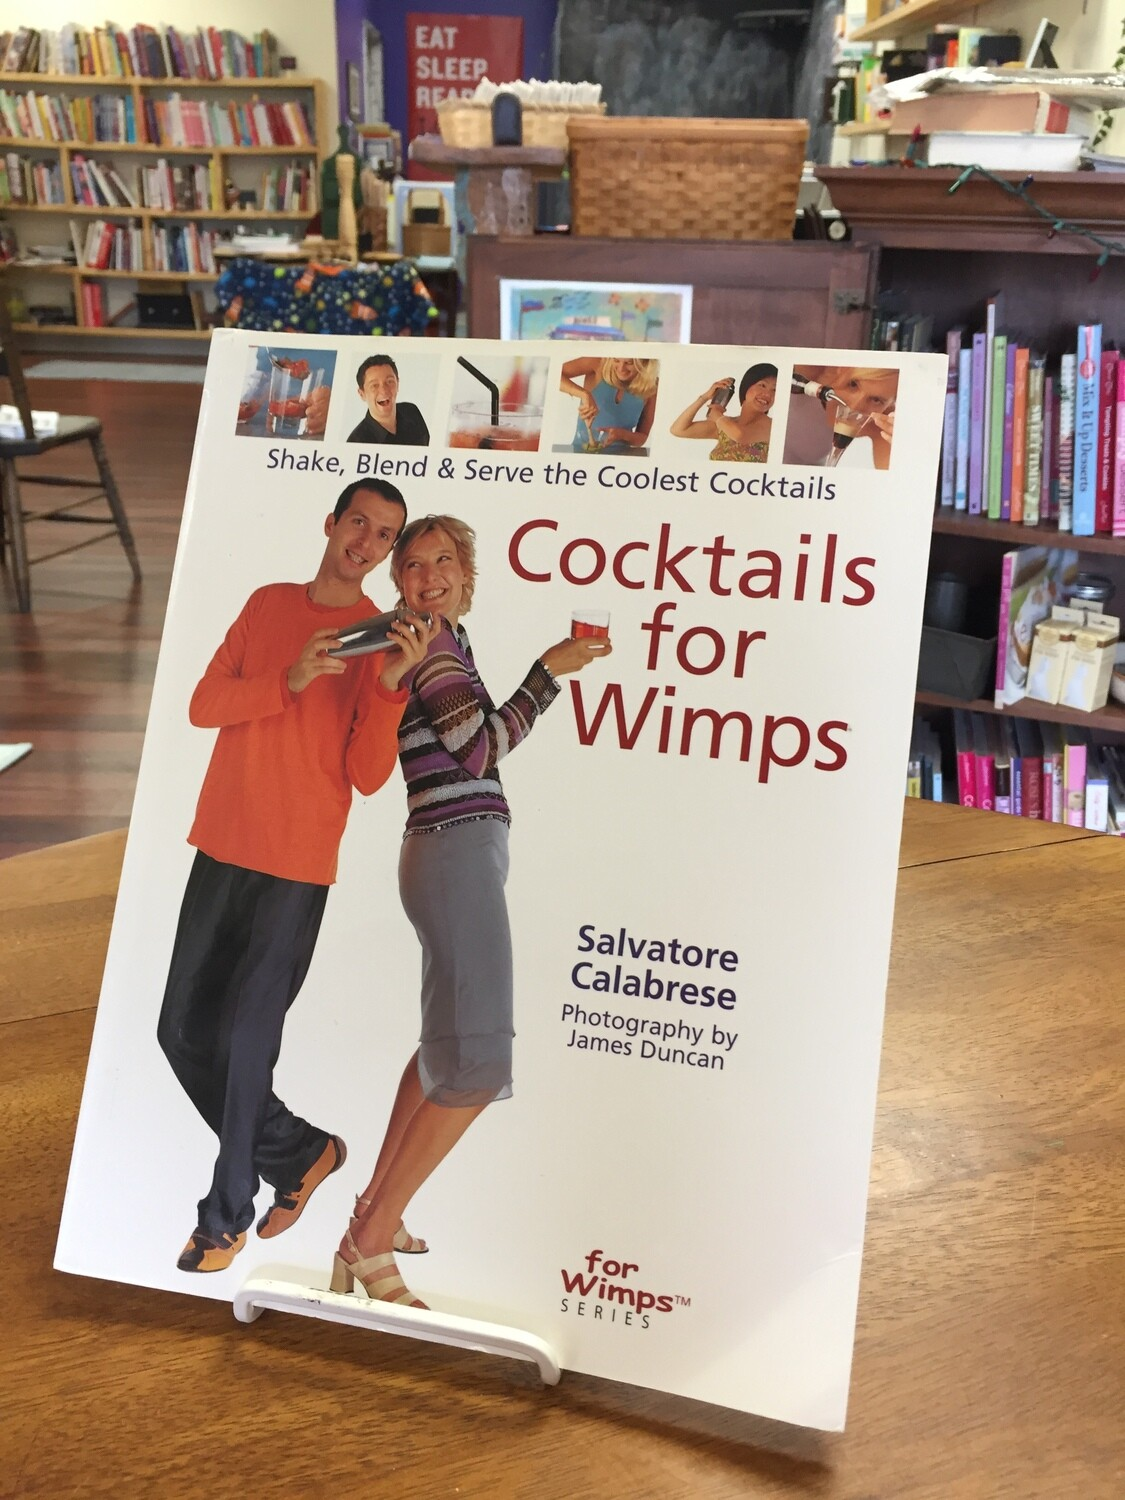 Cocktails for Wimps